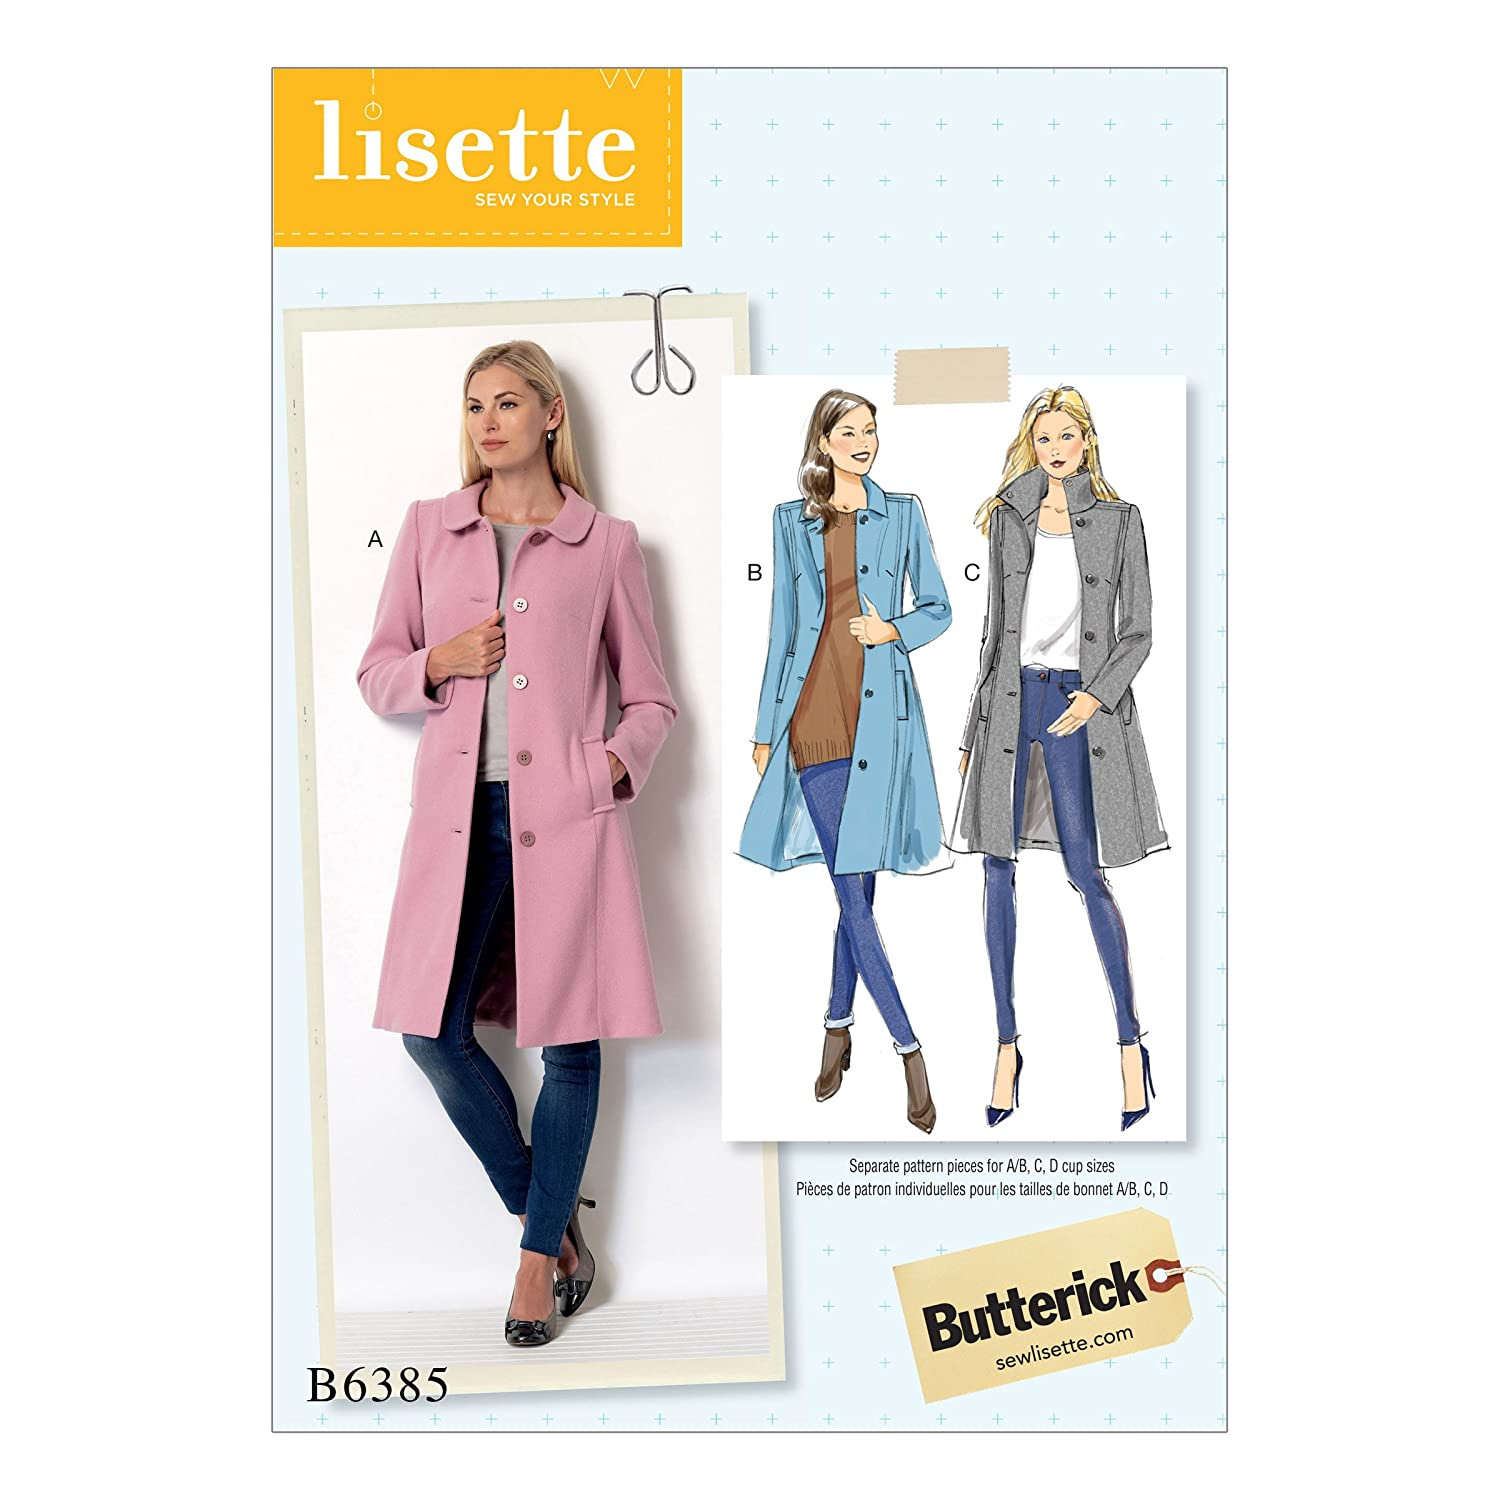 Butterick Patterns 6385 E5 Misses Coat, Multicoloured, Sizes 14-22 The McCall Pattern Company B6385-E50